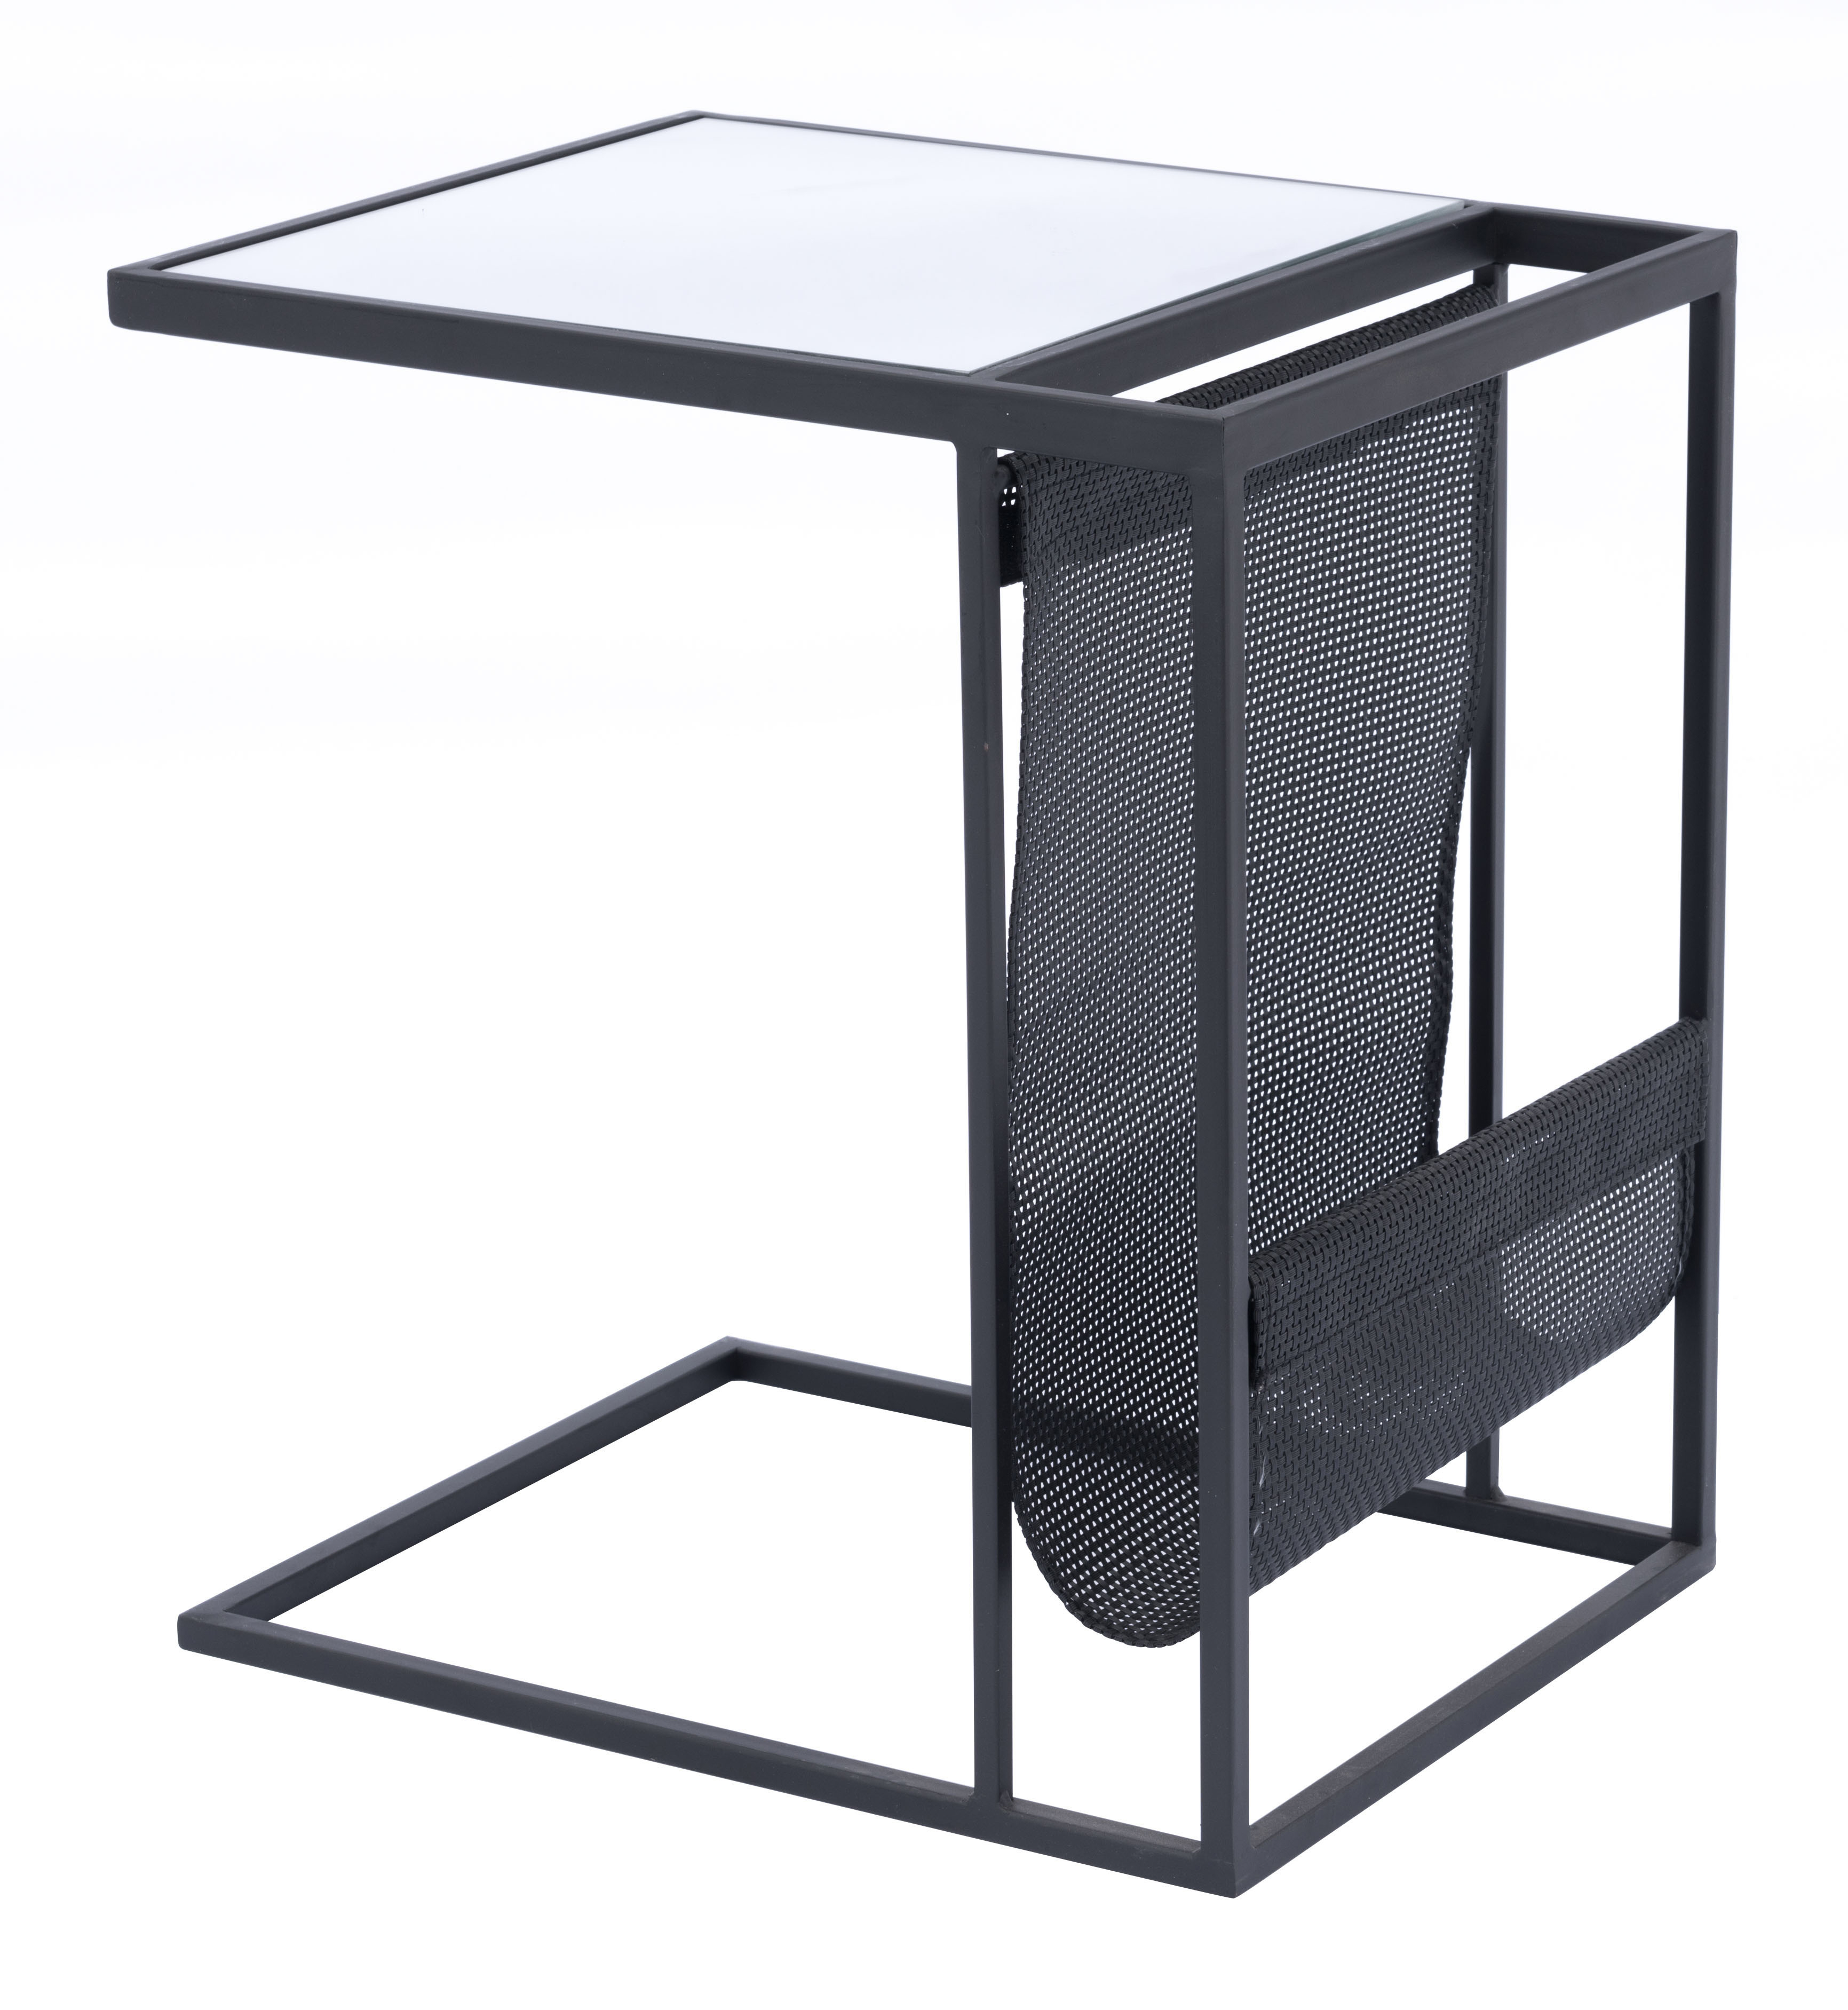 Zuo Modern Magazine Rack Table, Rectangular, Black